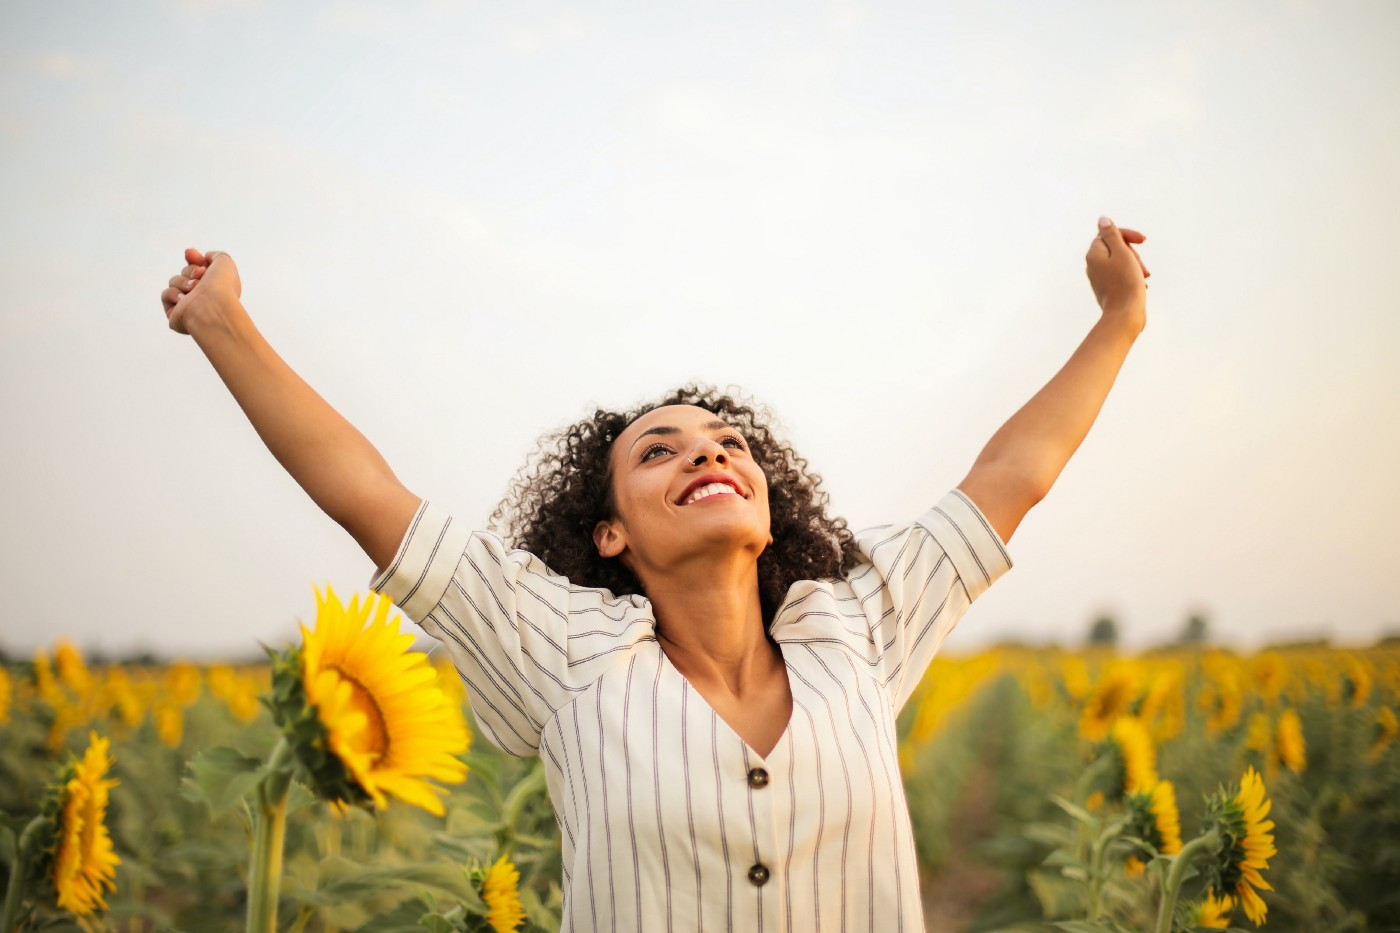 A woman raising her arms in a sunflower field